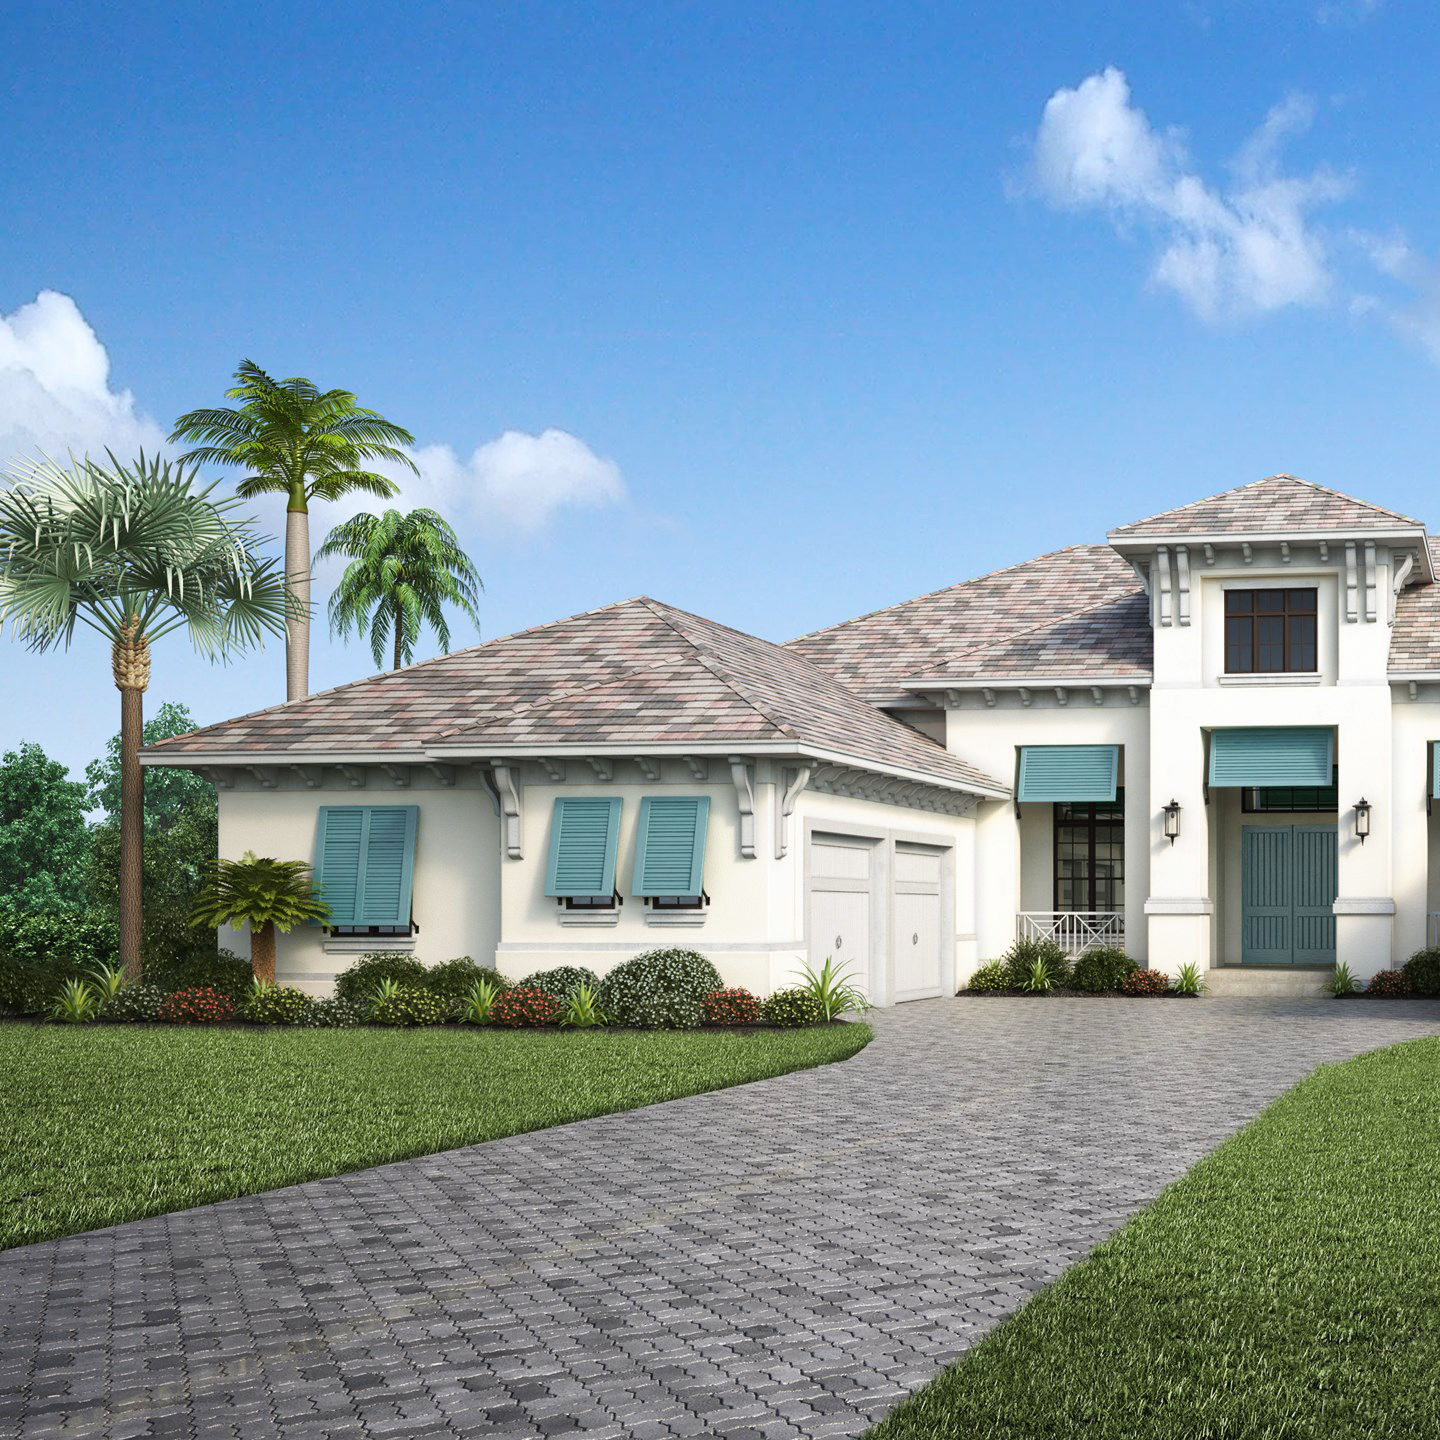 Stock signature homes clairborne ii c7x8hc